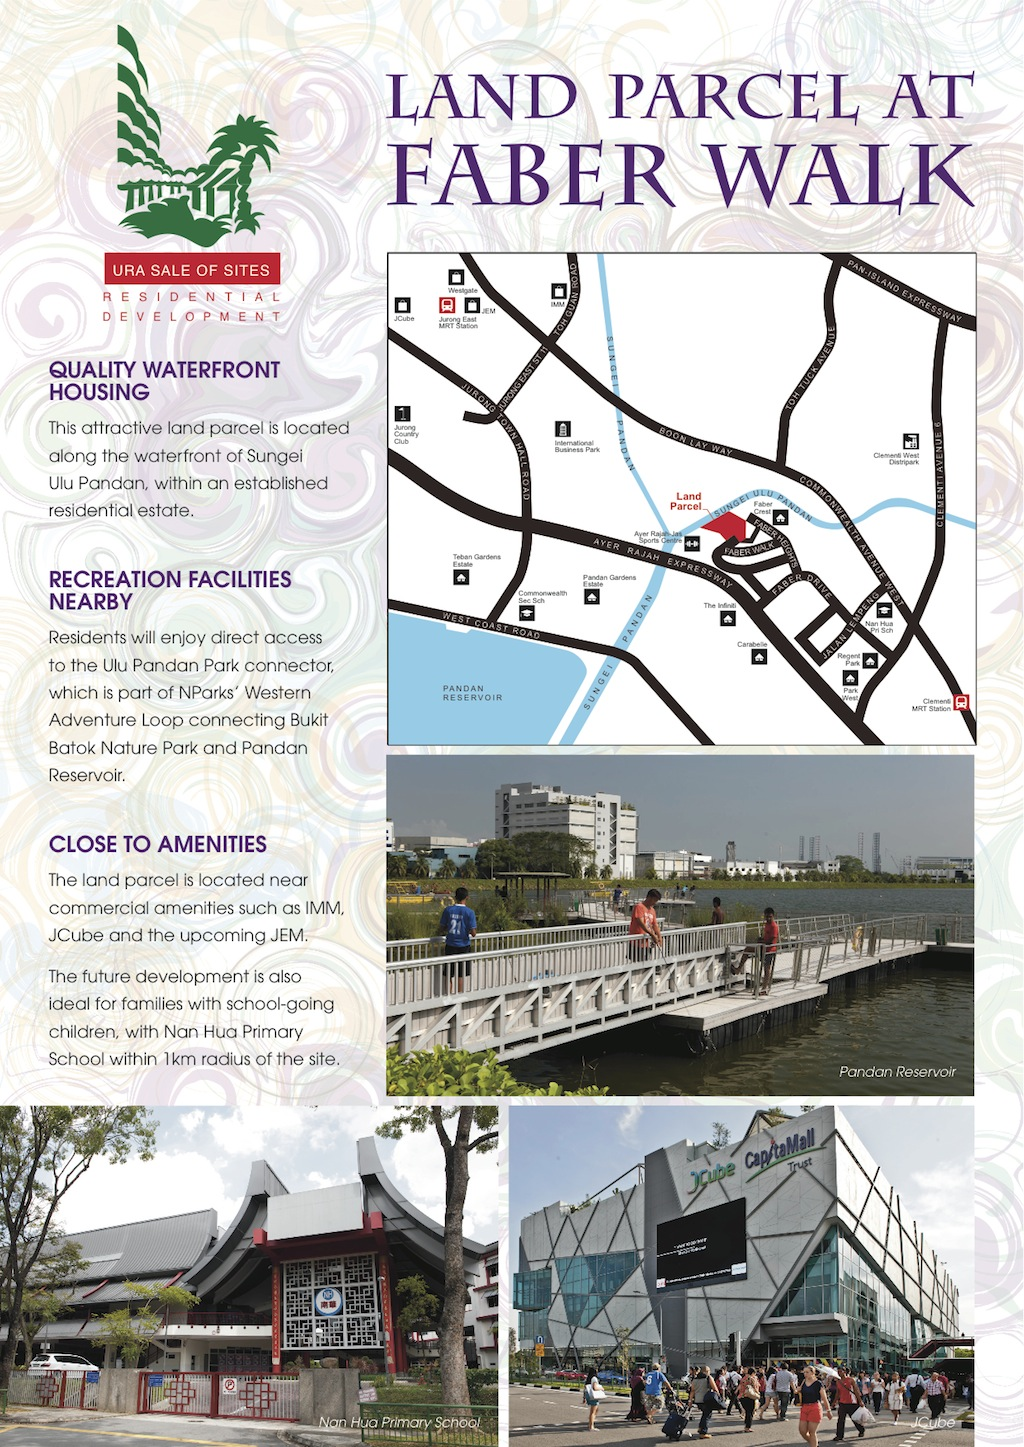 Waterfrontfaber-Faber-Walk-Sale-Brochure